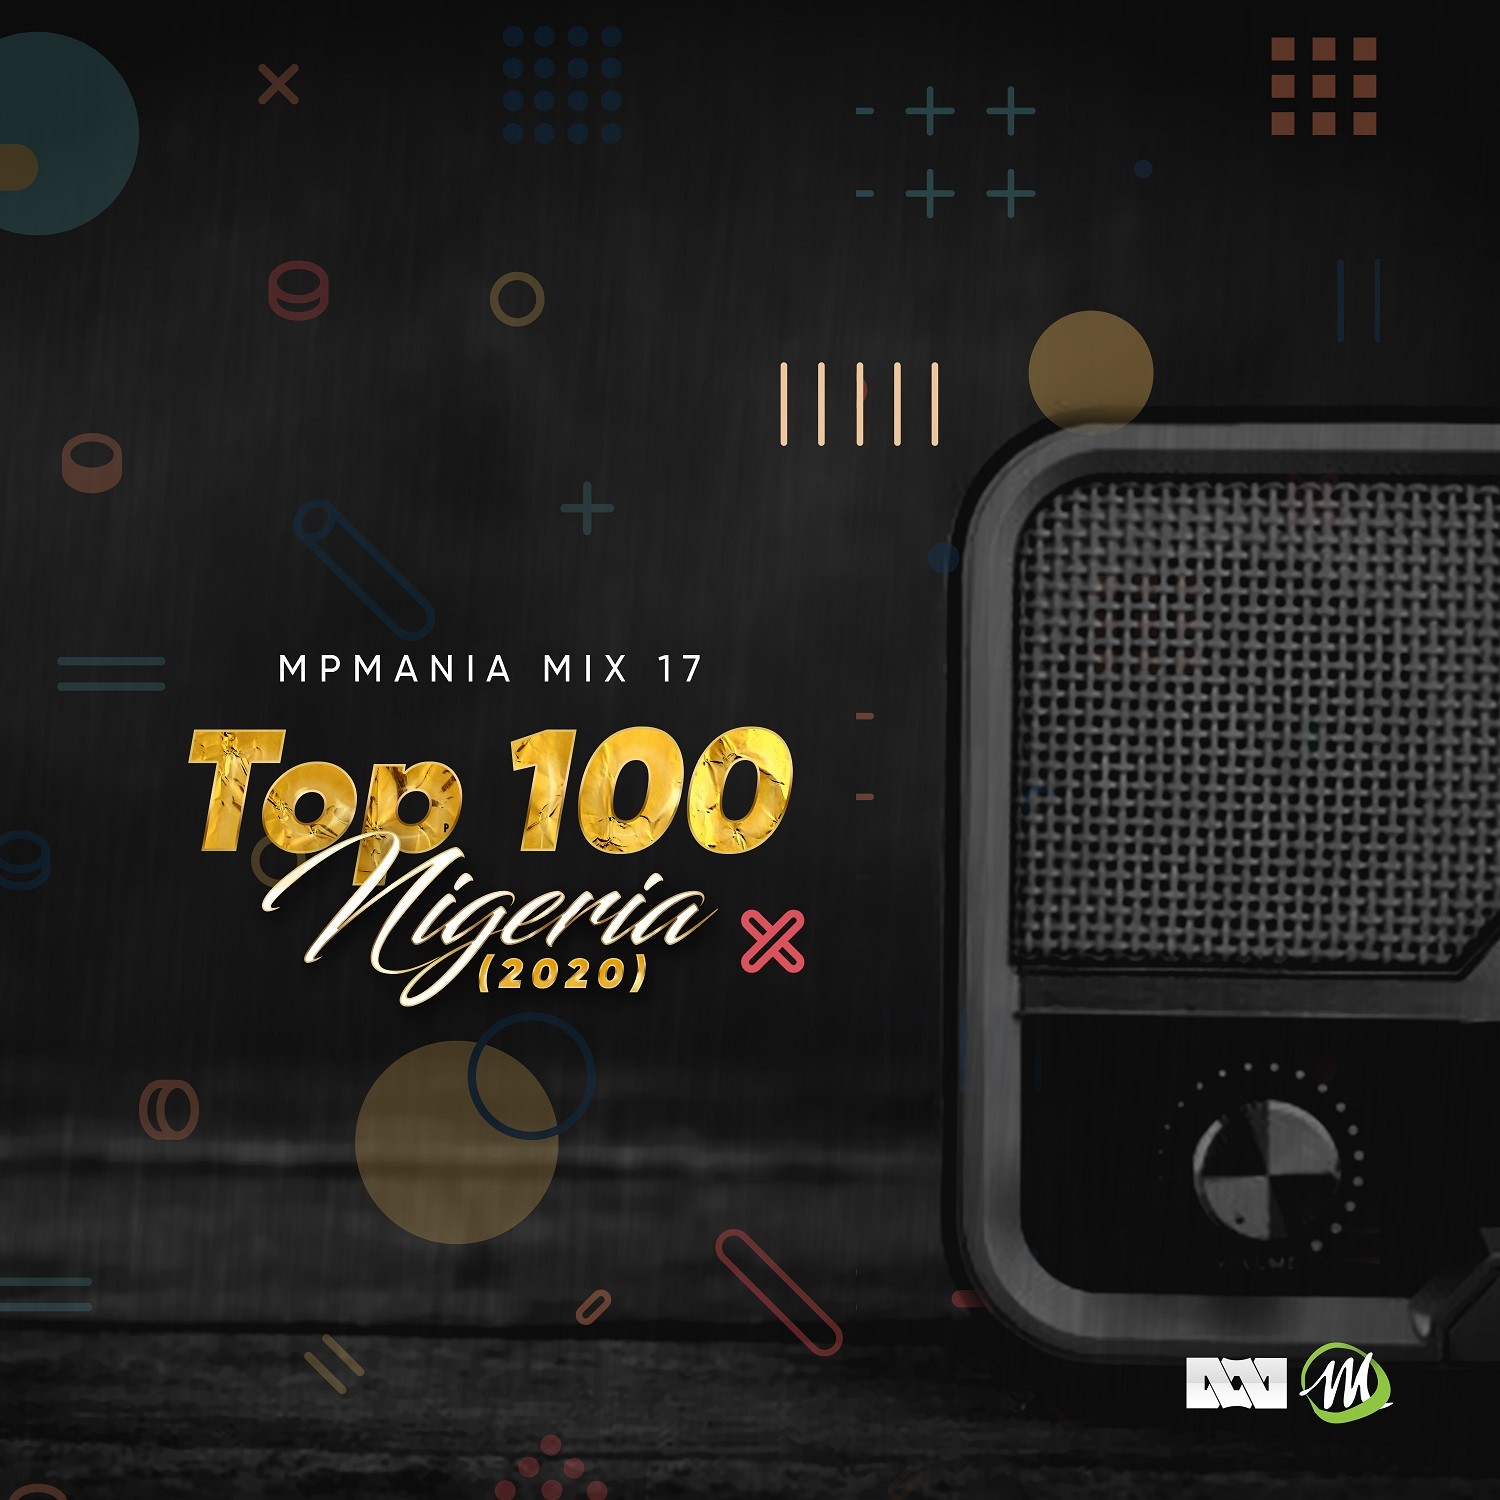 MIXTAPE: Top 100 Nigeria (2020) – Mpmania Mix 17